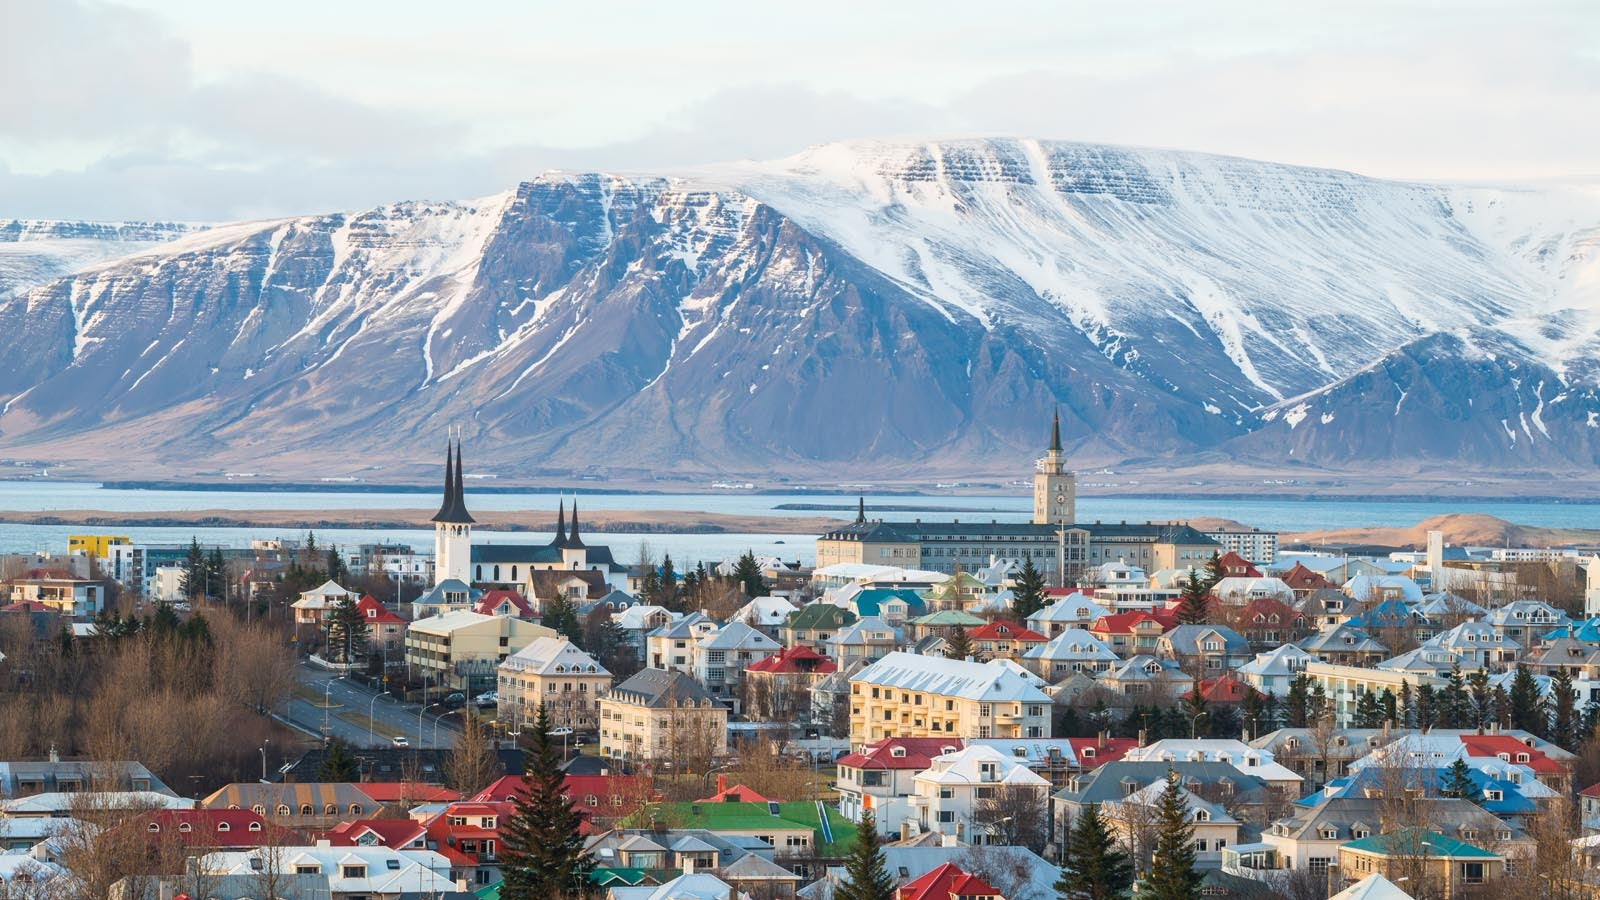 Nordic landscape showing town and snowy mountains